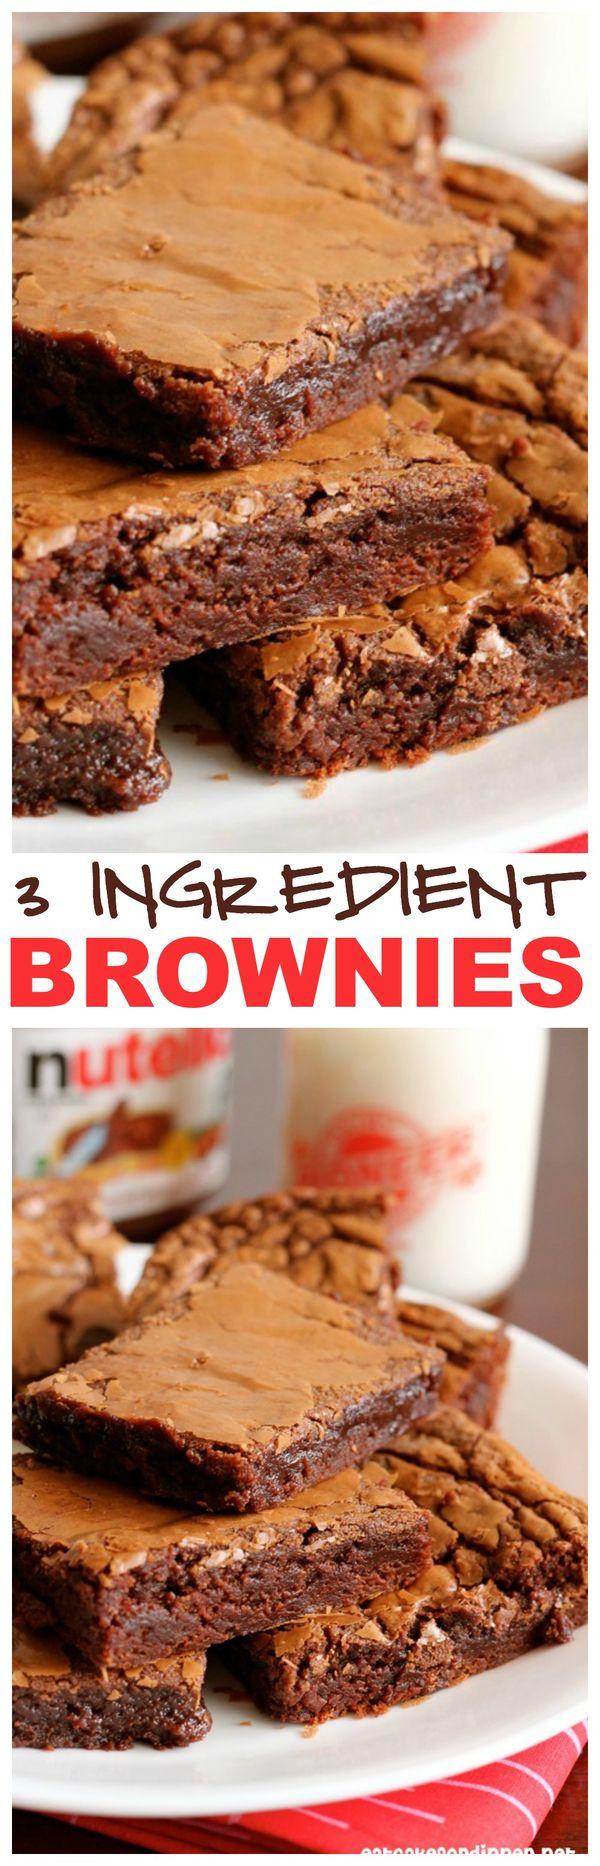 These 3 Ingredient Brownies are out of this world!! And one of the ingredients is NUTELLA! Easy and awesome!